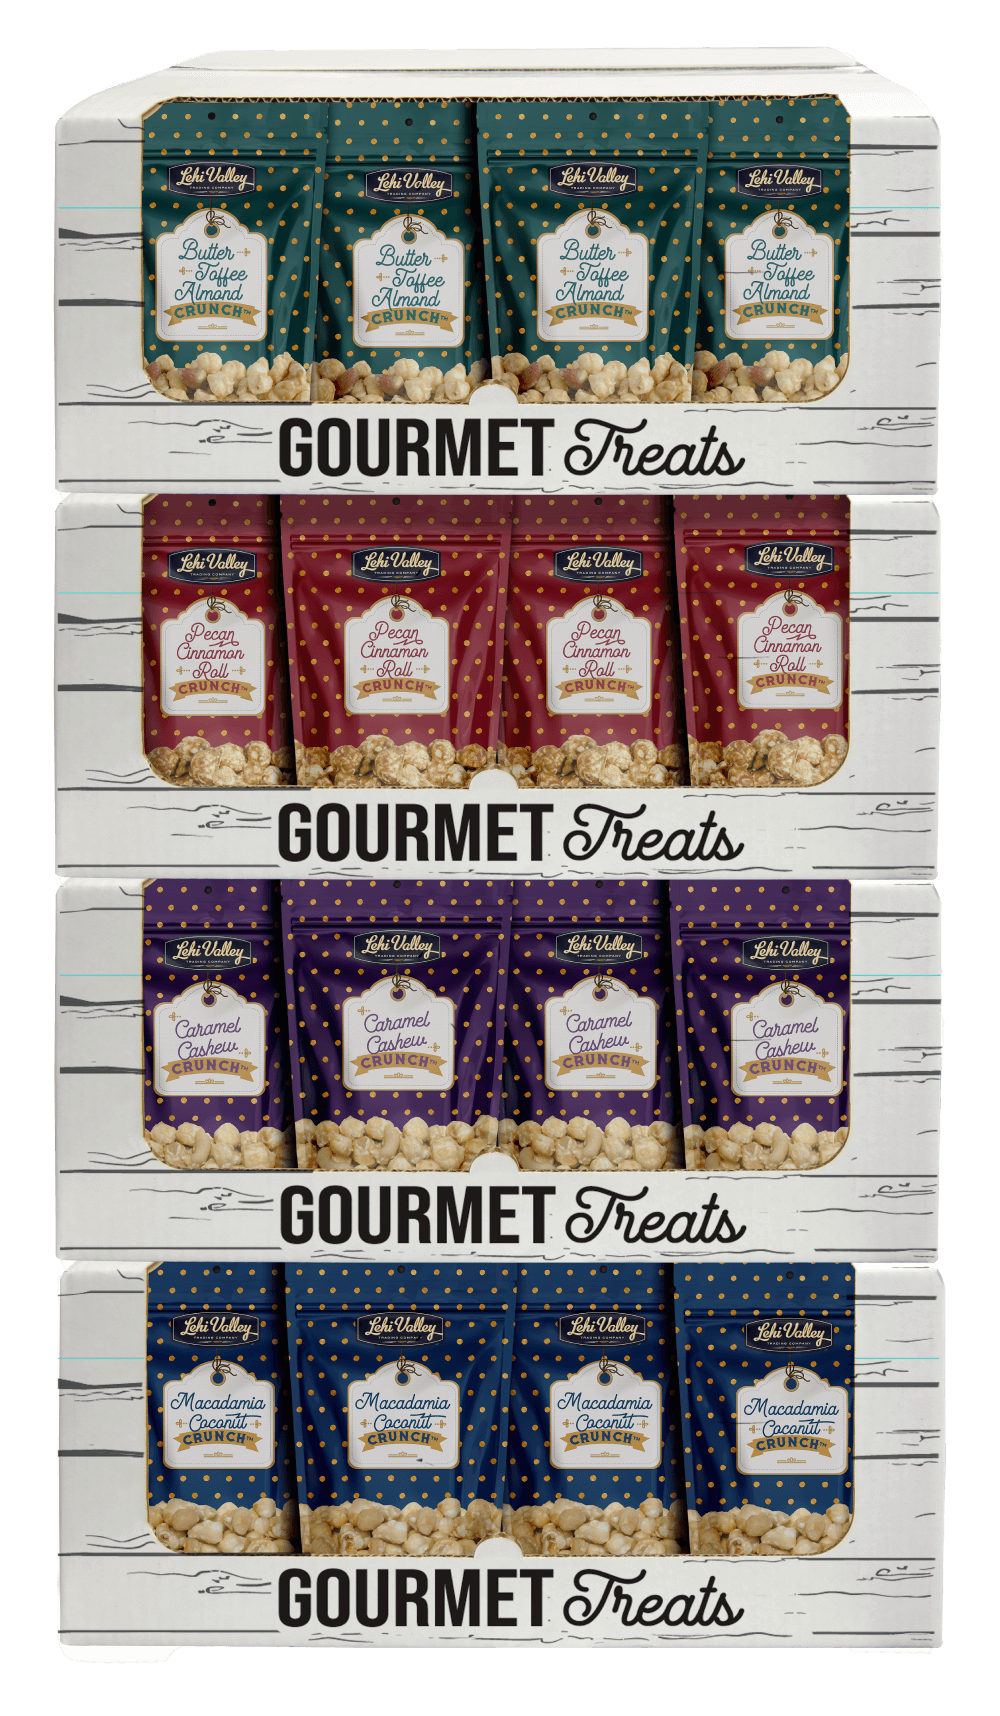 Out gourmet popcorn shipper boxes opened for display